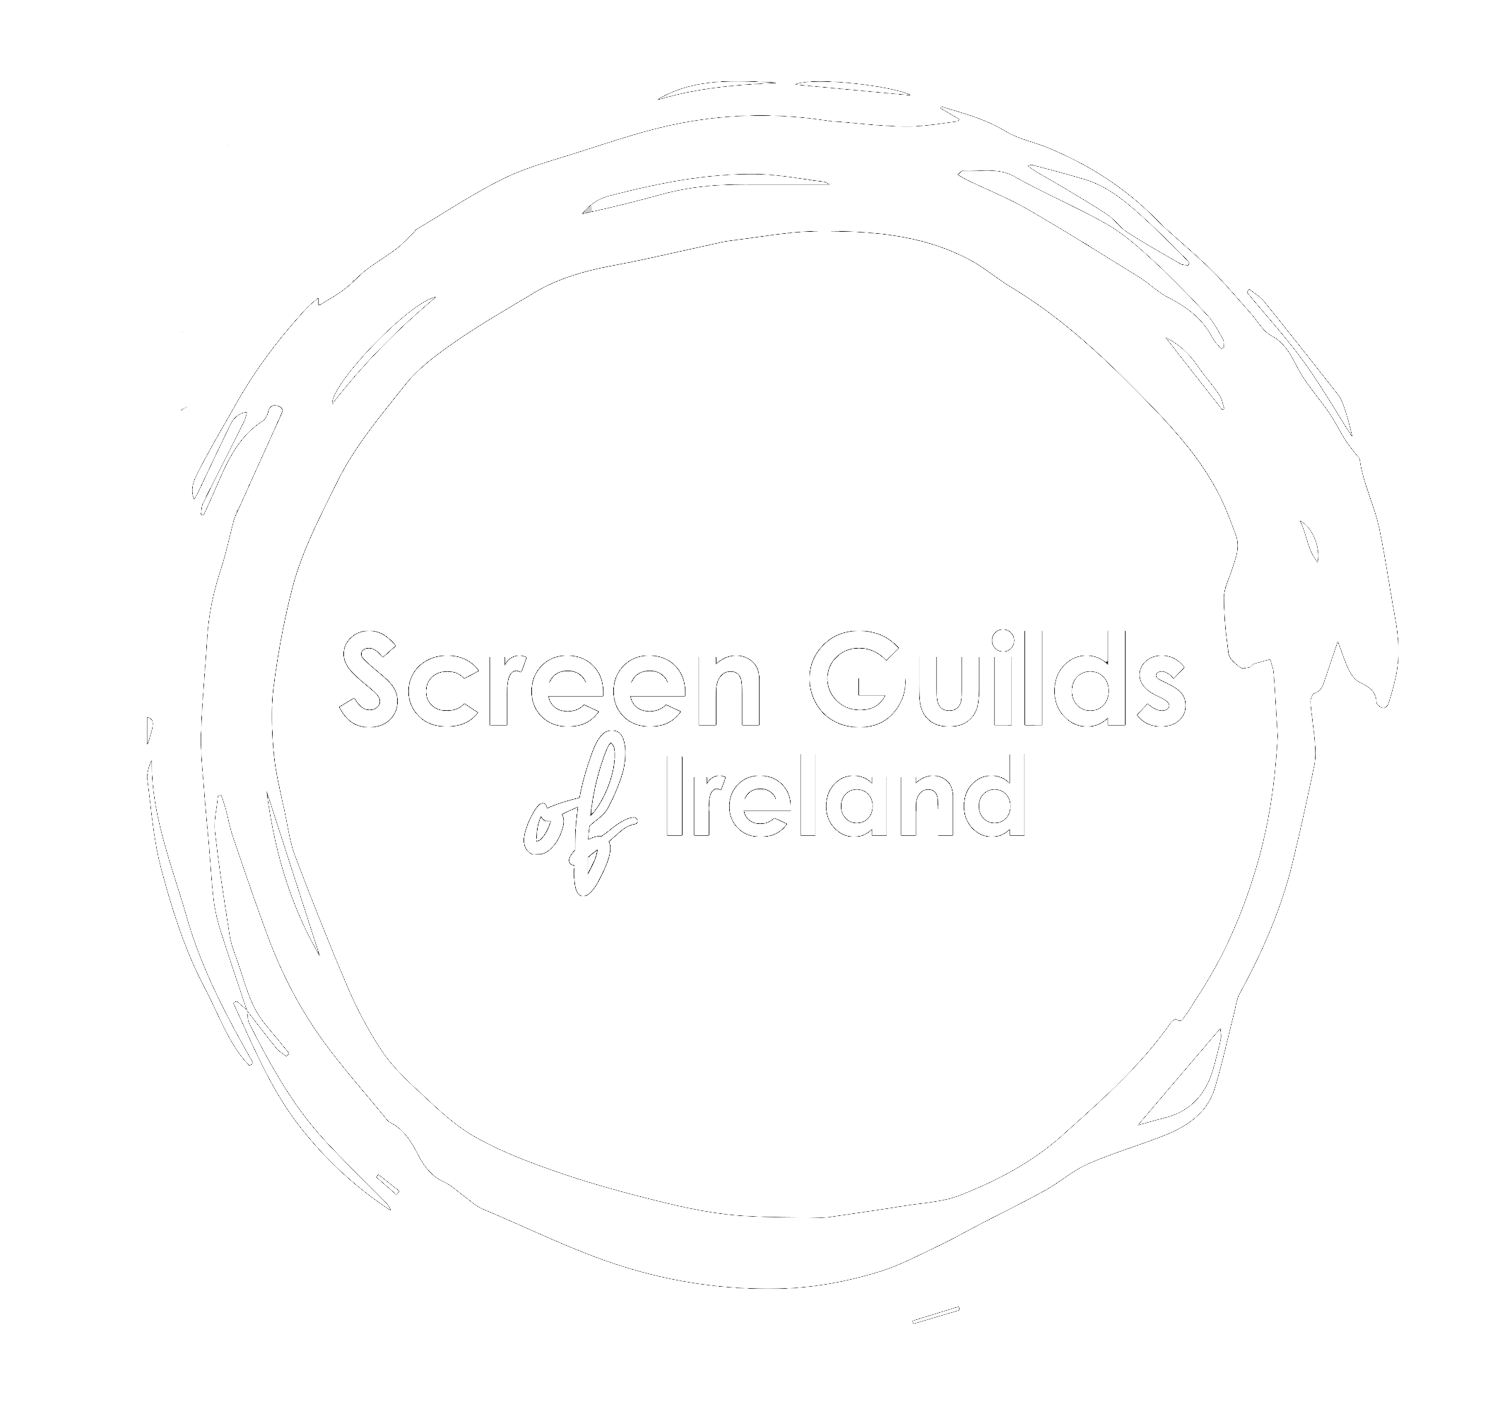 Screen Guilds of Ireland